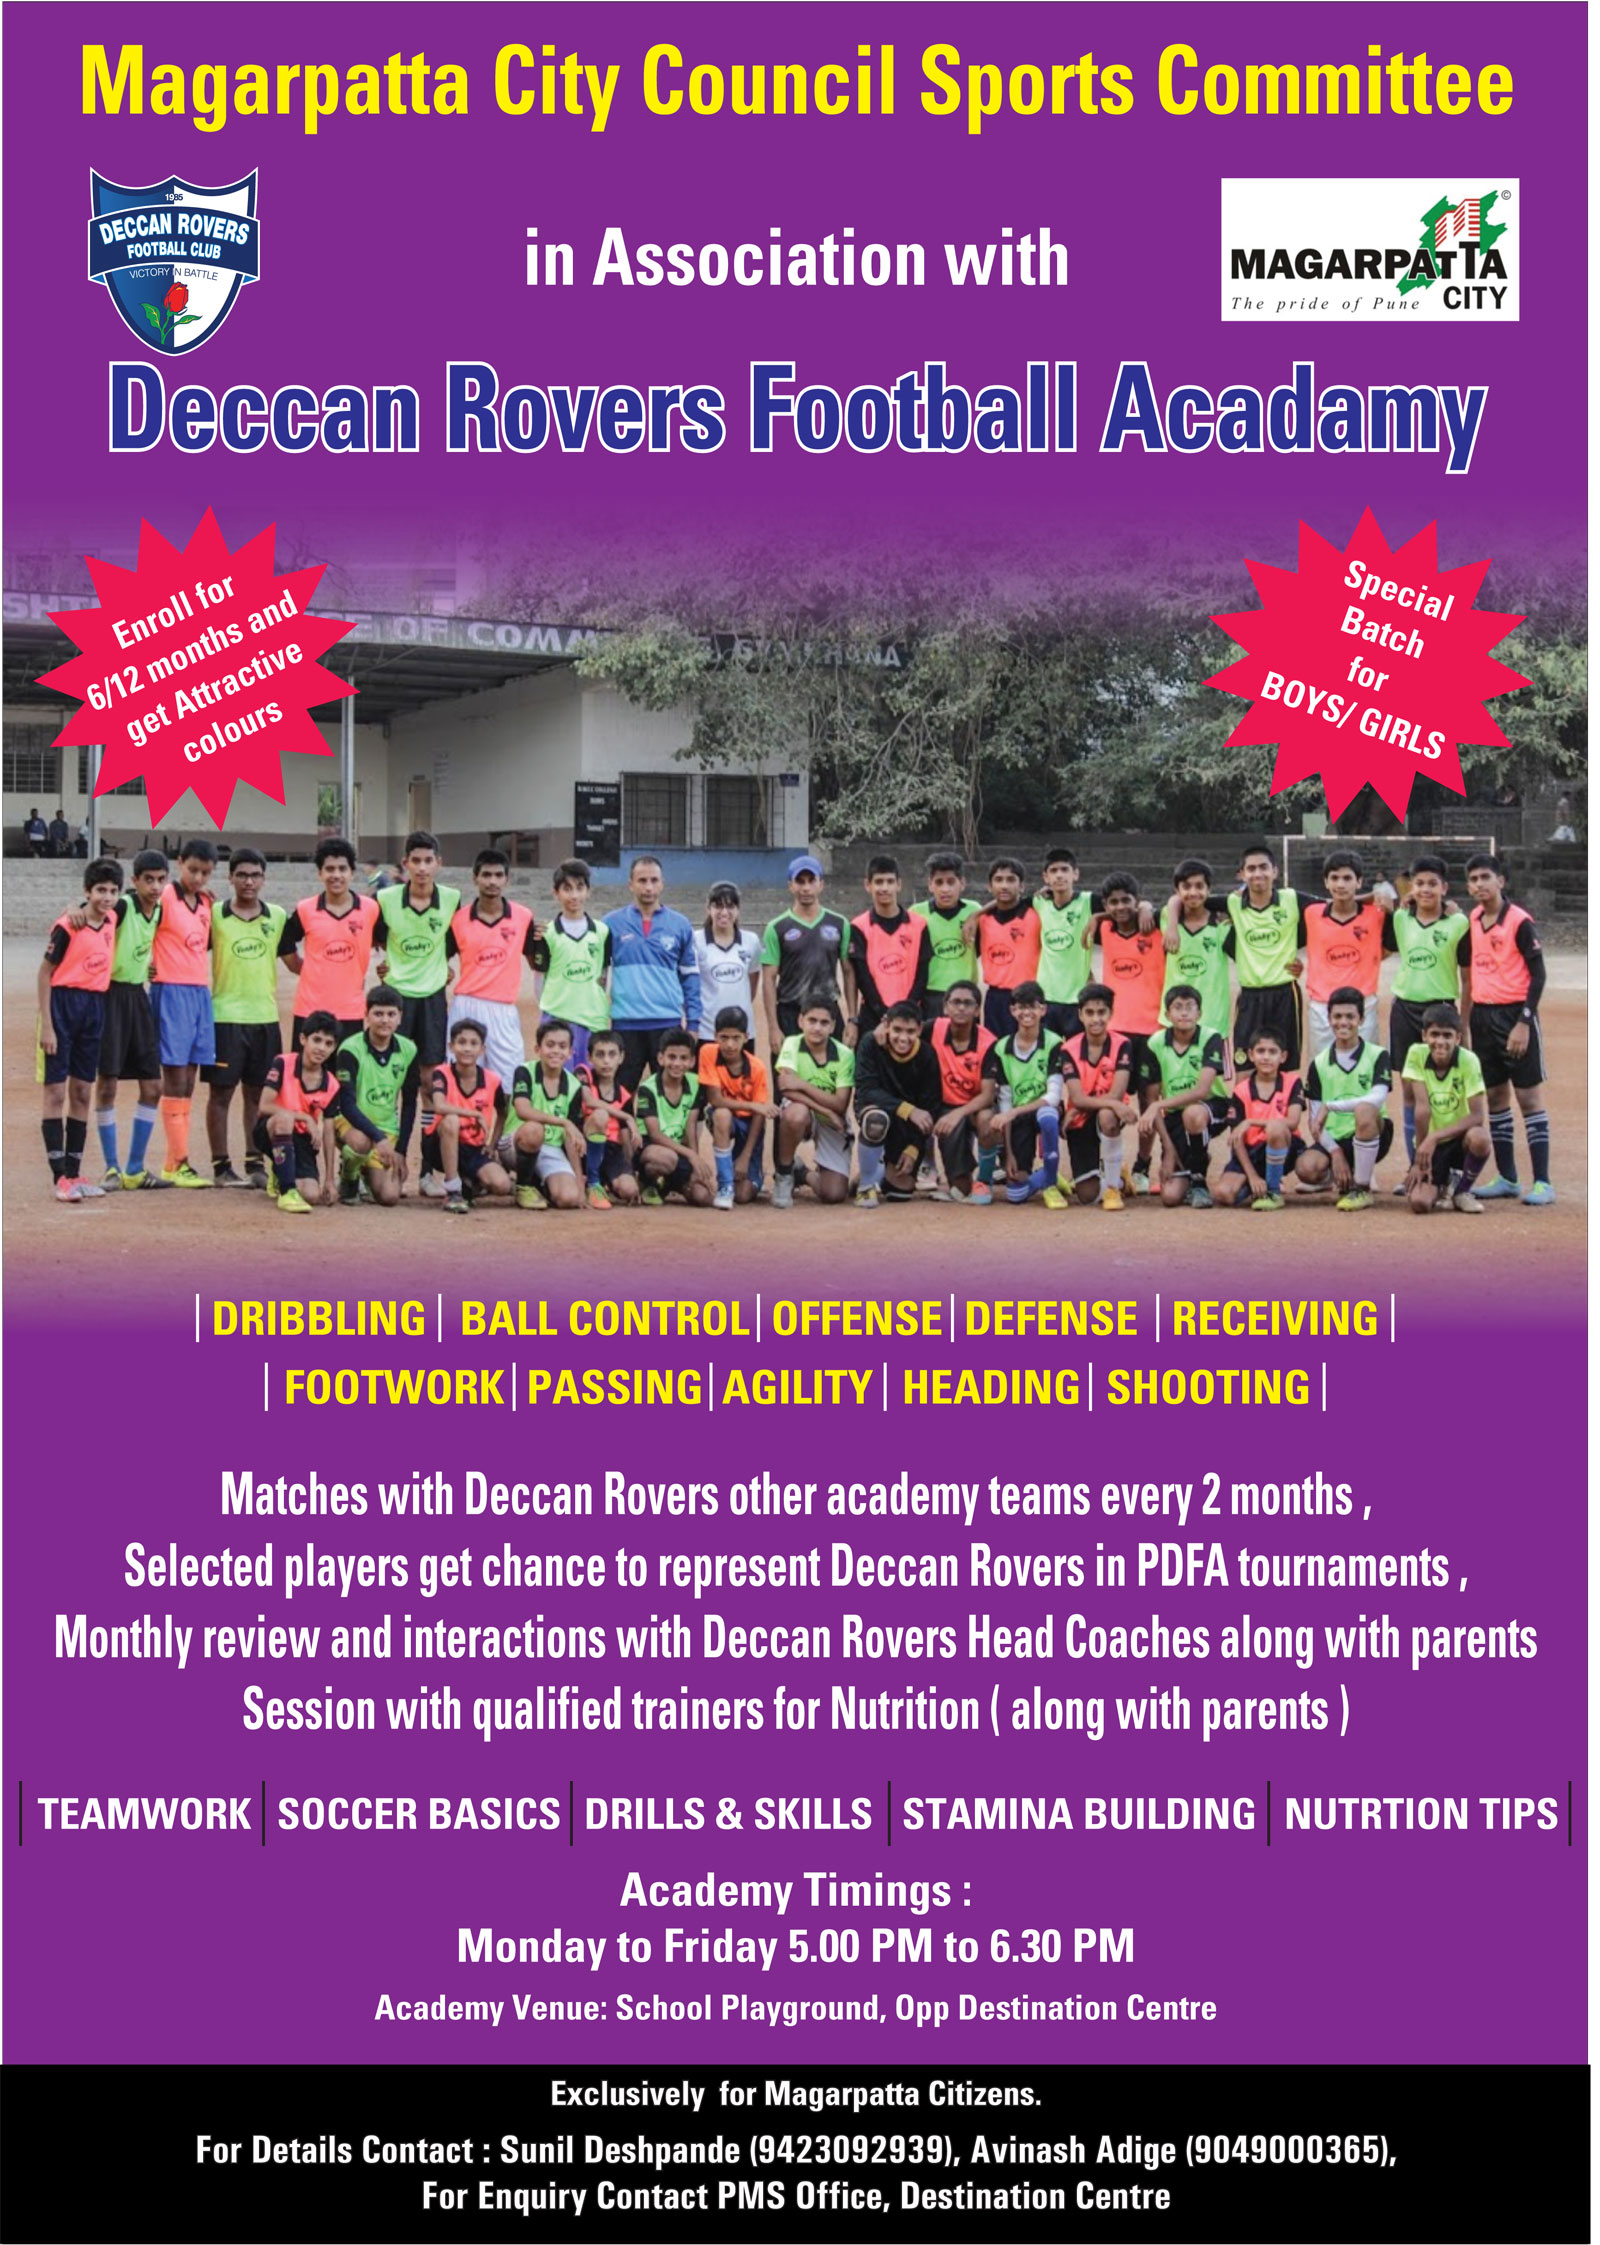 Deccan-Rovers-Football-Academy---Sports-Committee-2